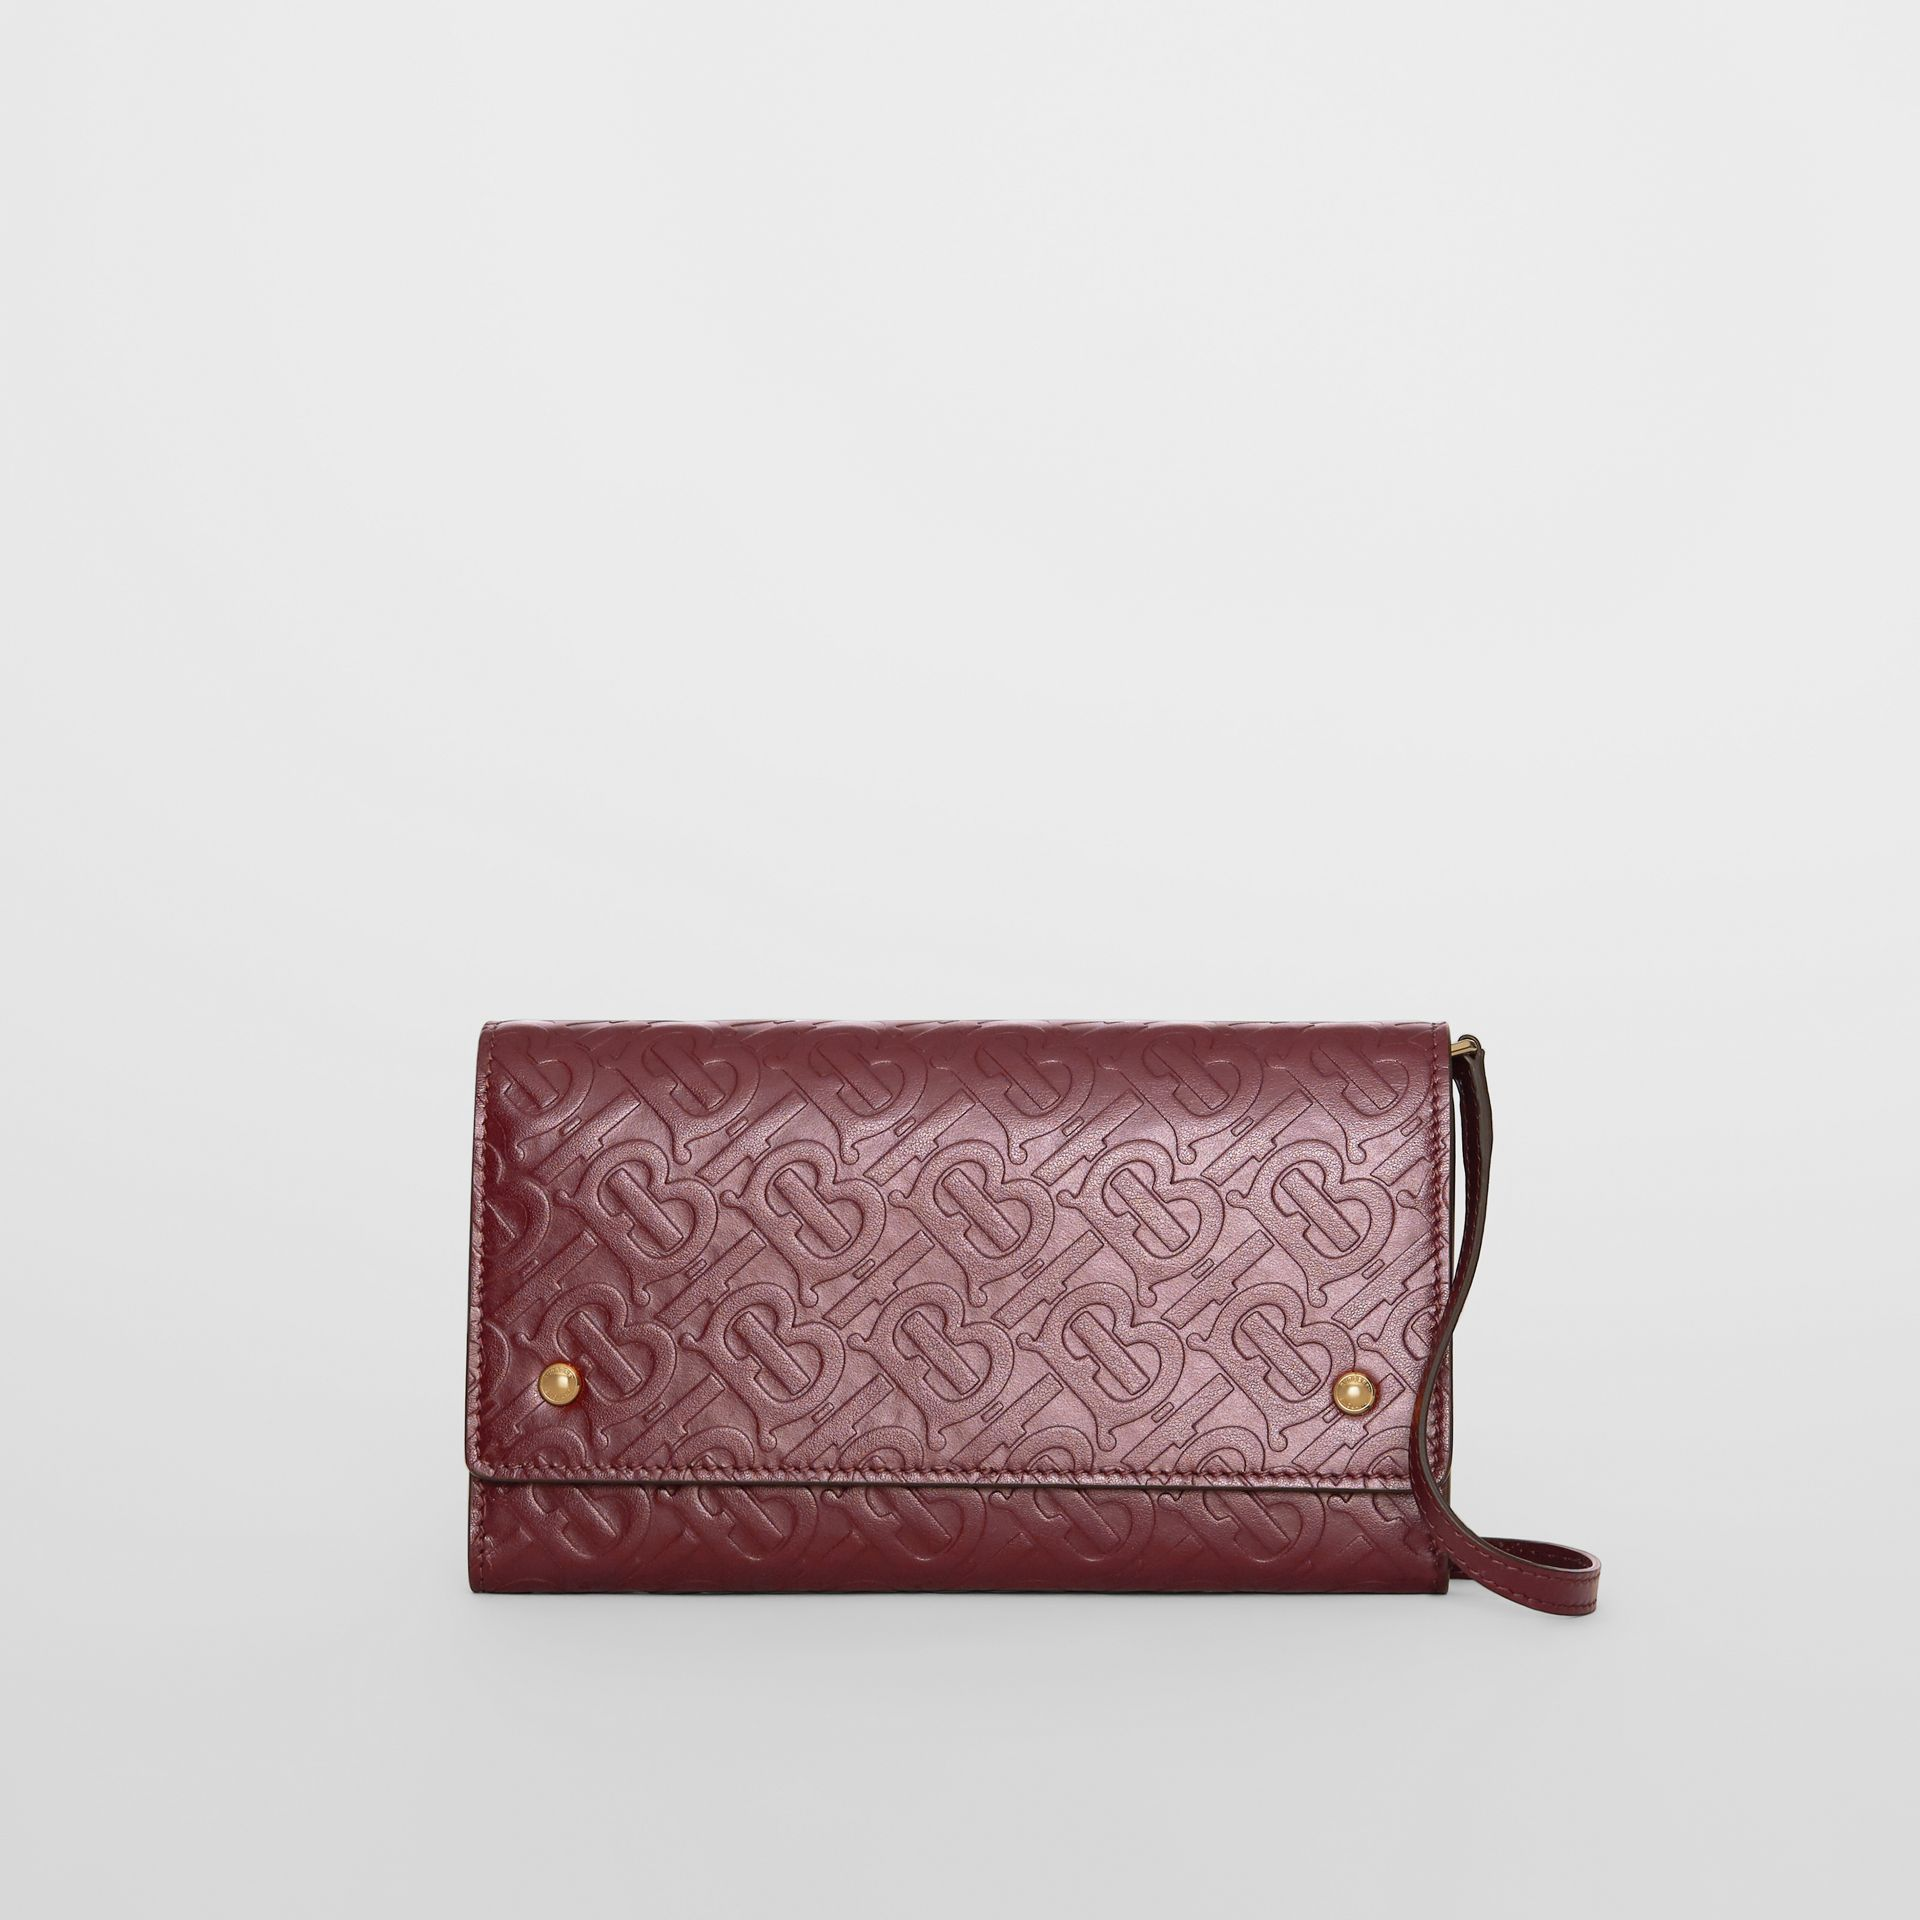 Monogram Leather Wallet with Detachable Strap in Oxblood - Women | Burberry - gallery image 0